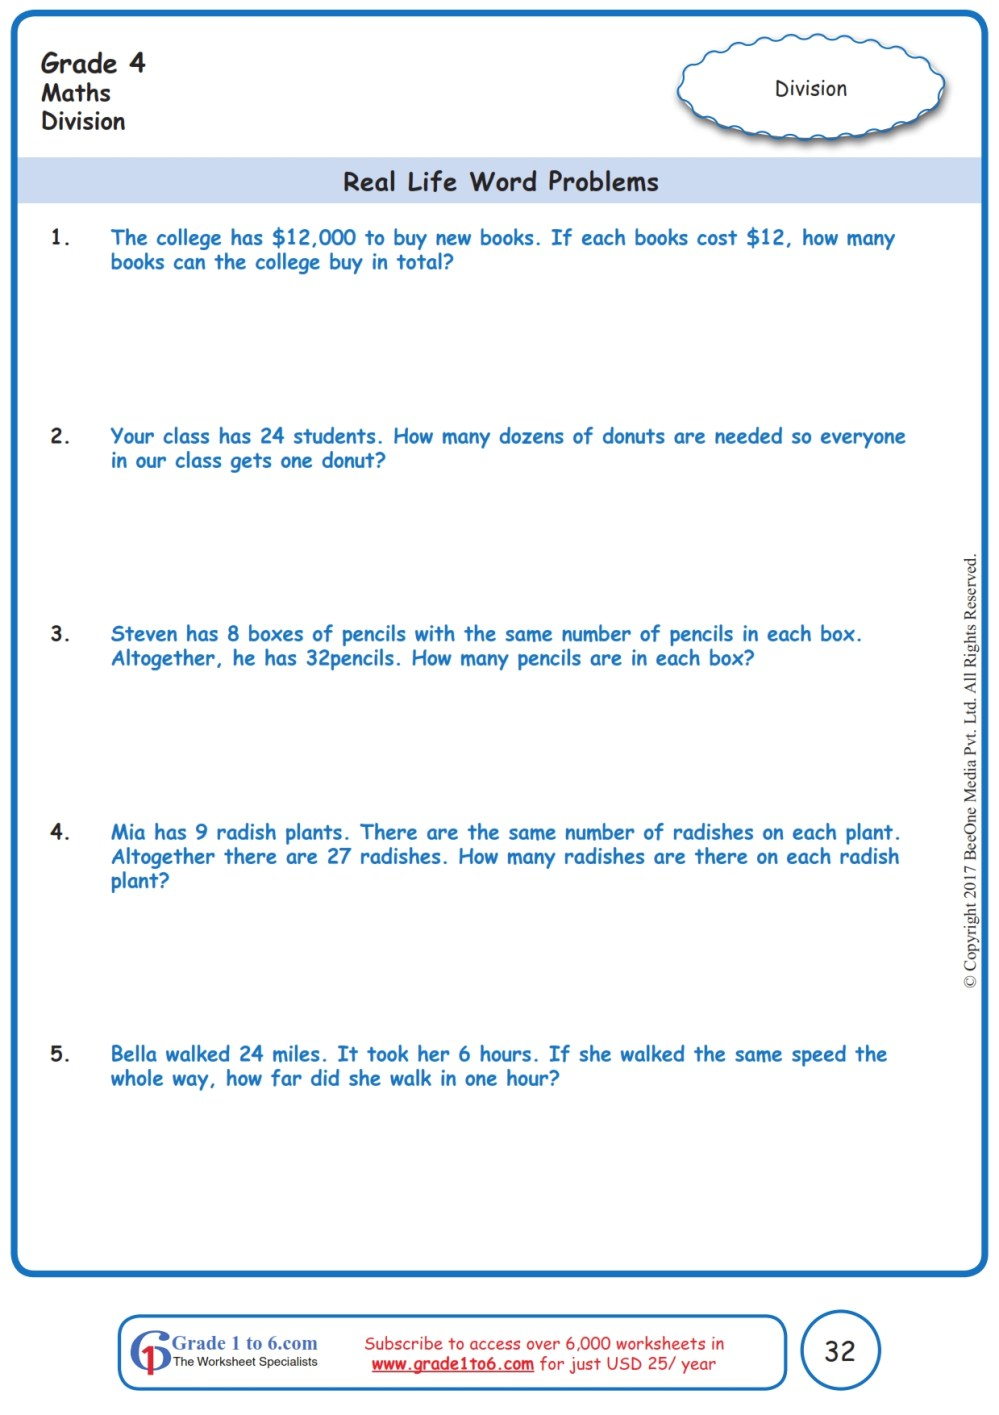 medium resolution of Grade 4 Division Word Problems Worksheets www.grade1to6.com